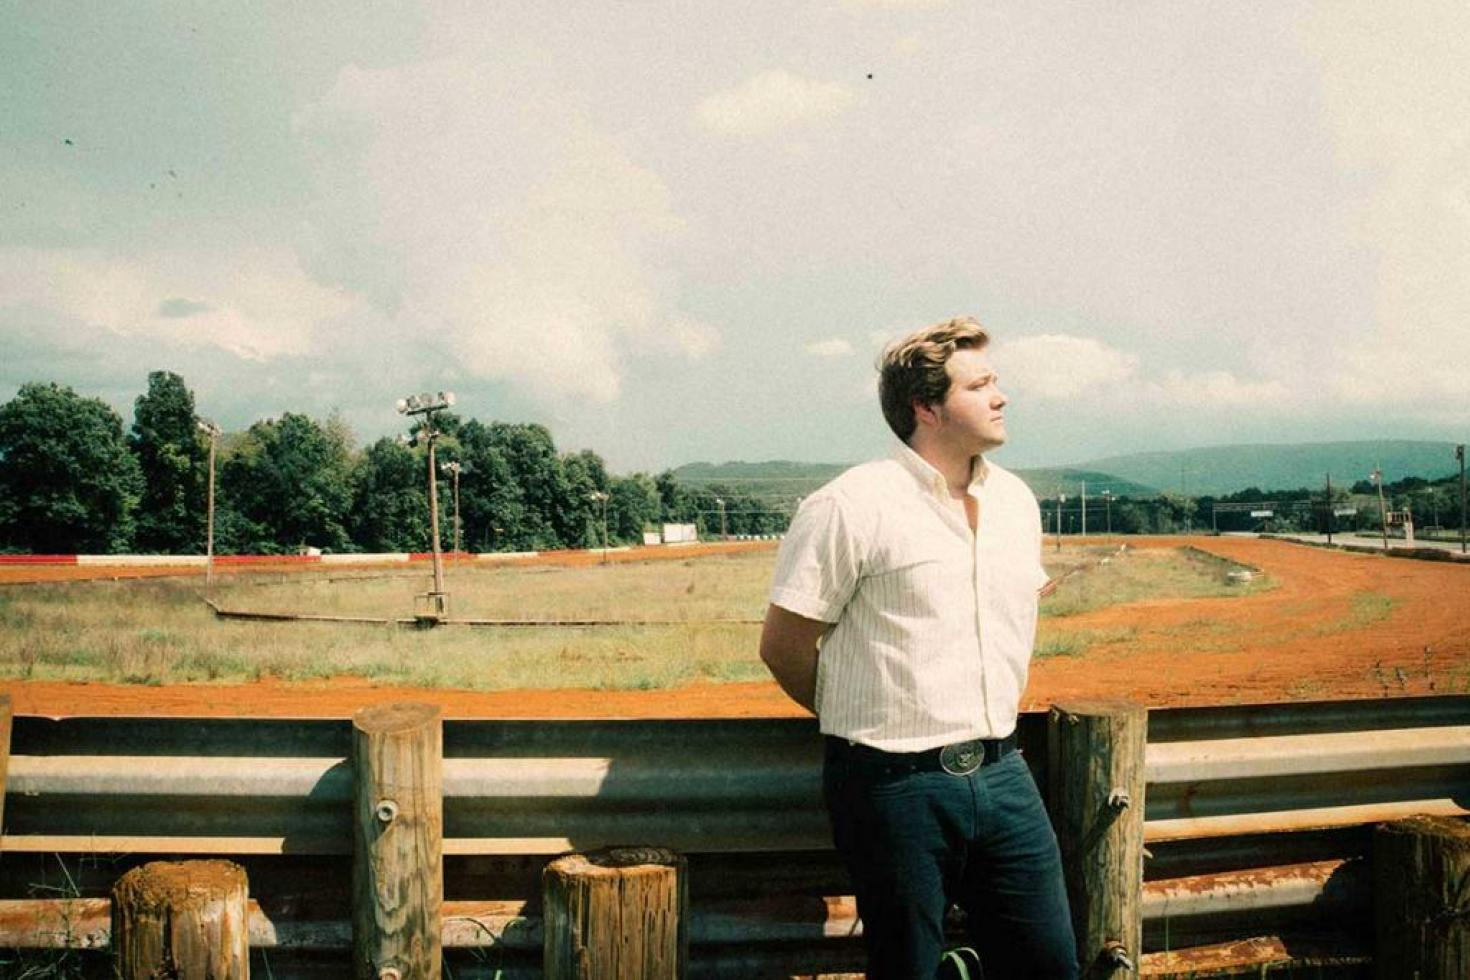 Mike Frazier's guide to The Shenandoah Valley